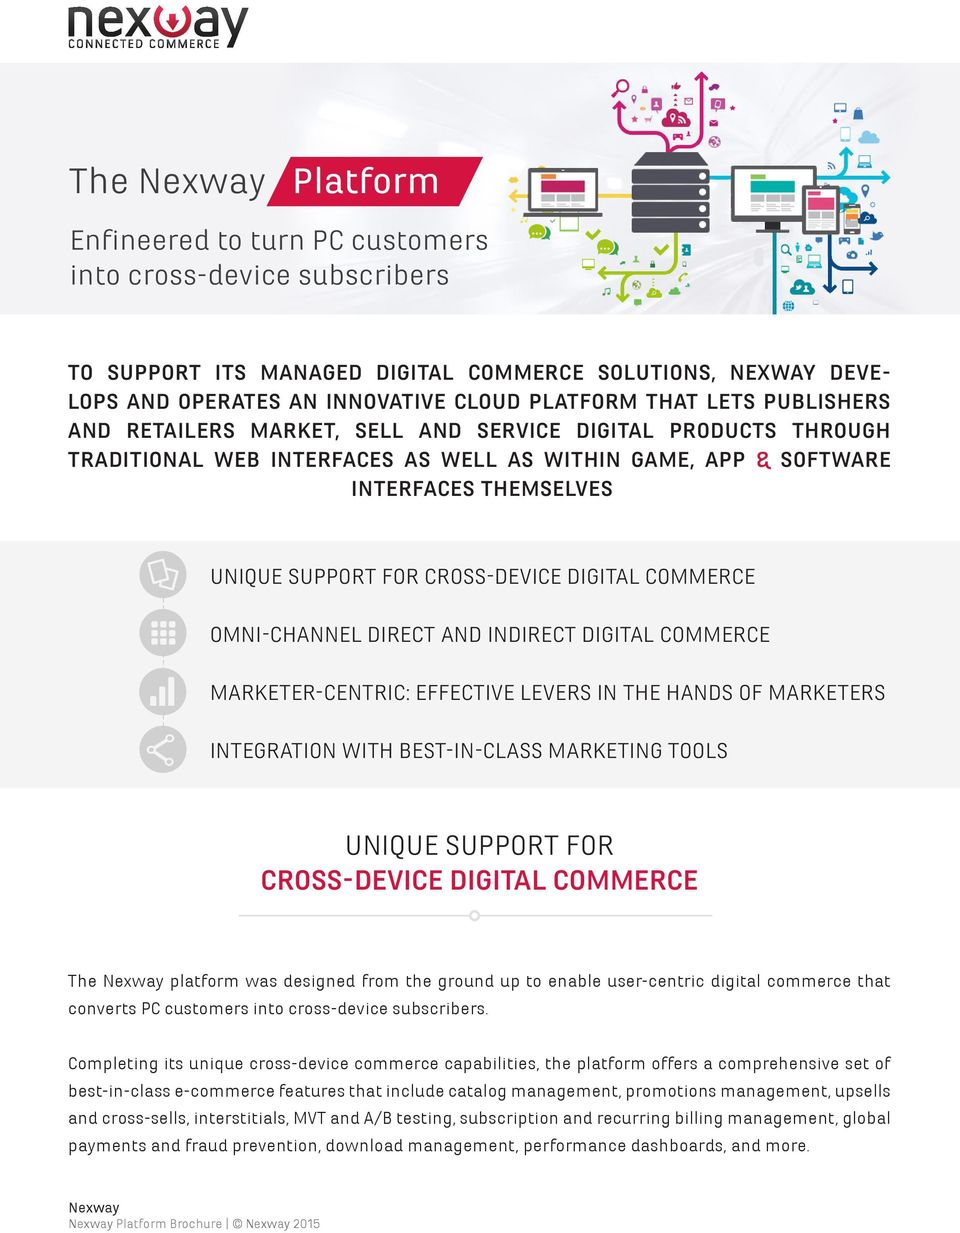 SUPPORT FOR CROSS-DEVICE DIGITAL COMMERCE OMNI-CHANNEL DIRECT AND INDIRECT DIGITAL COMMERCE MARKETER-CENTRIC: EFFECTIVE LEVERS IN THE HANDS OF MARKETERS INTEGRATION WITH BEST-IN-CLASS MARKETING TOOLS